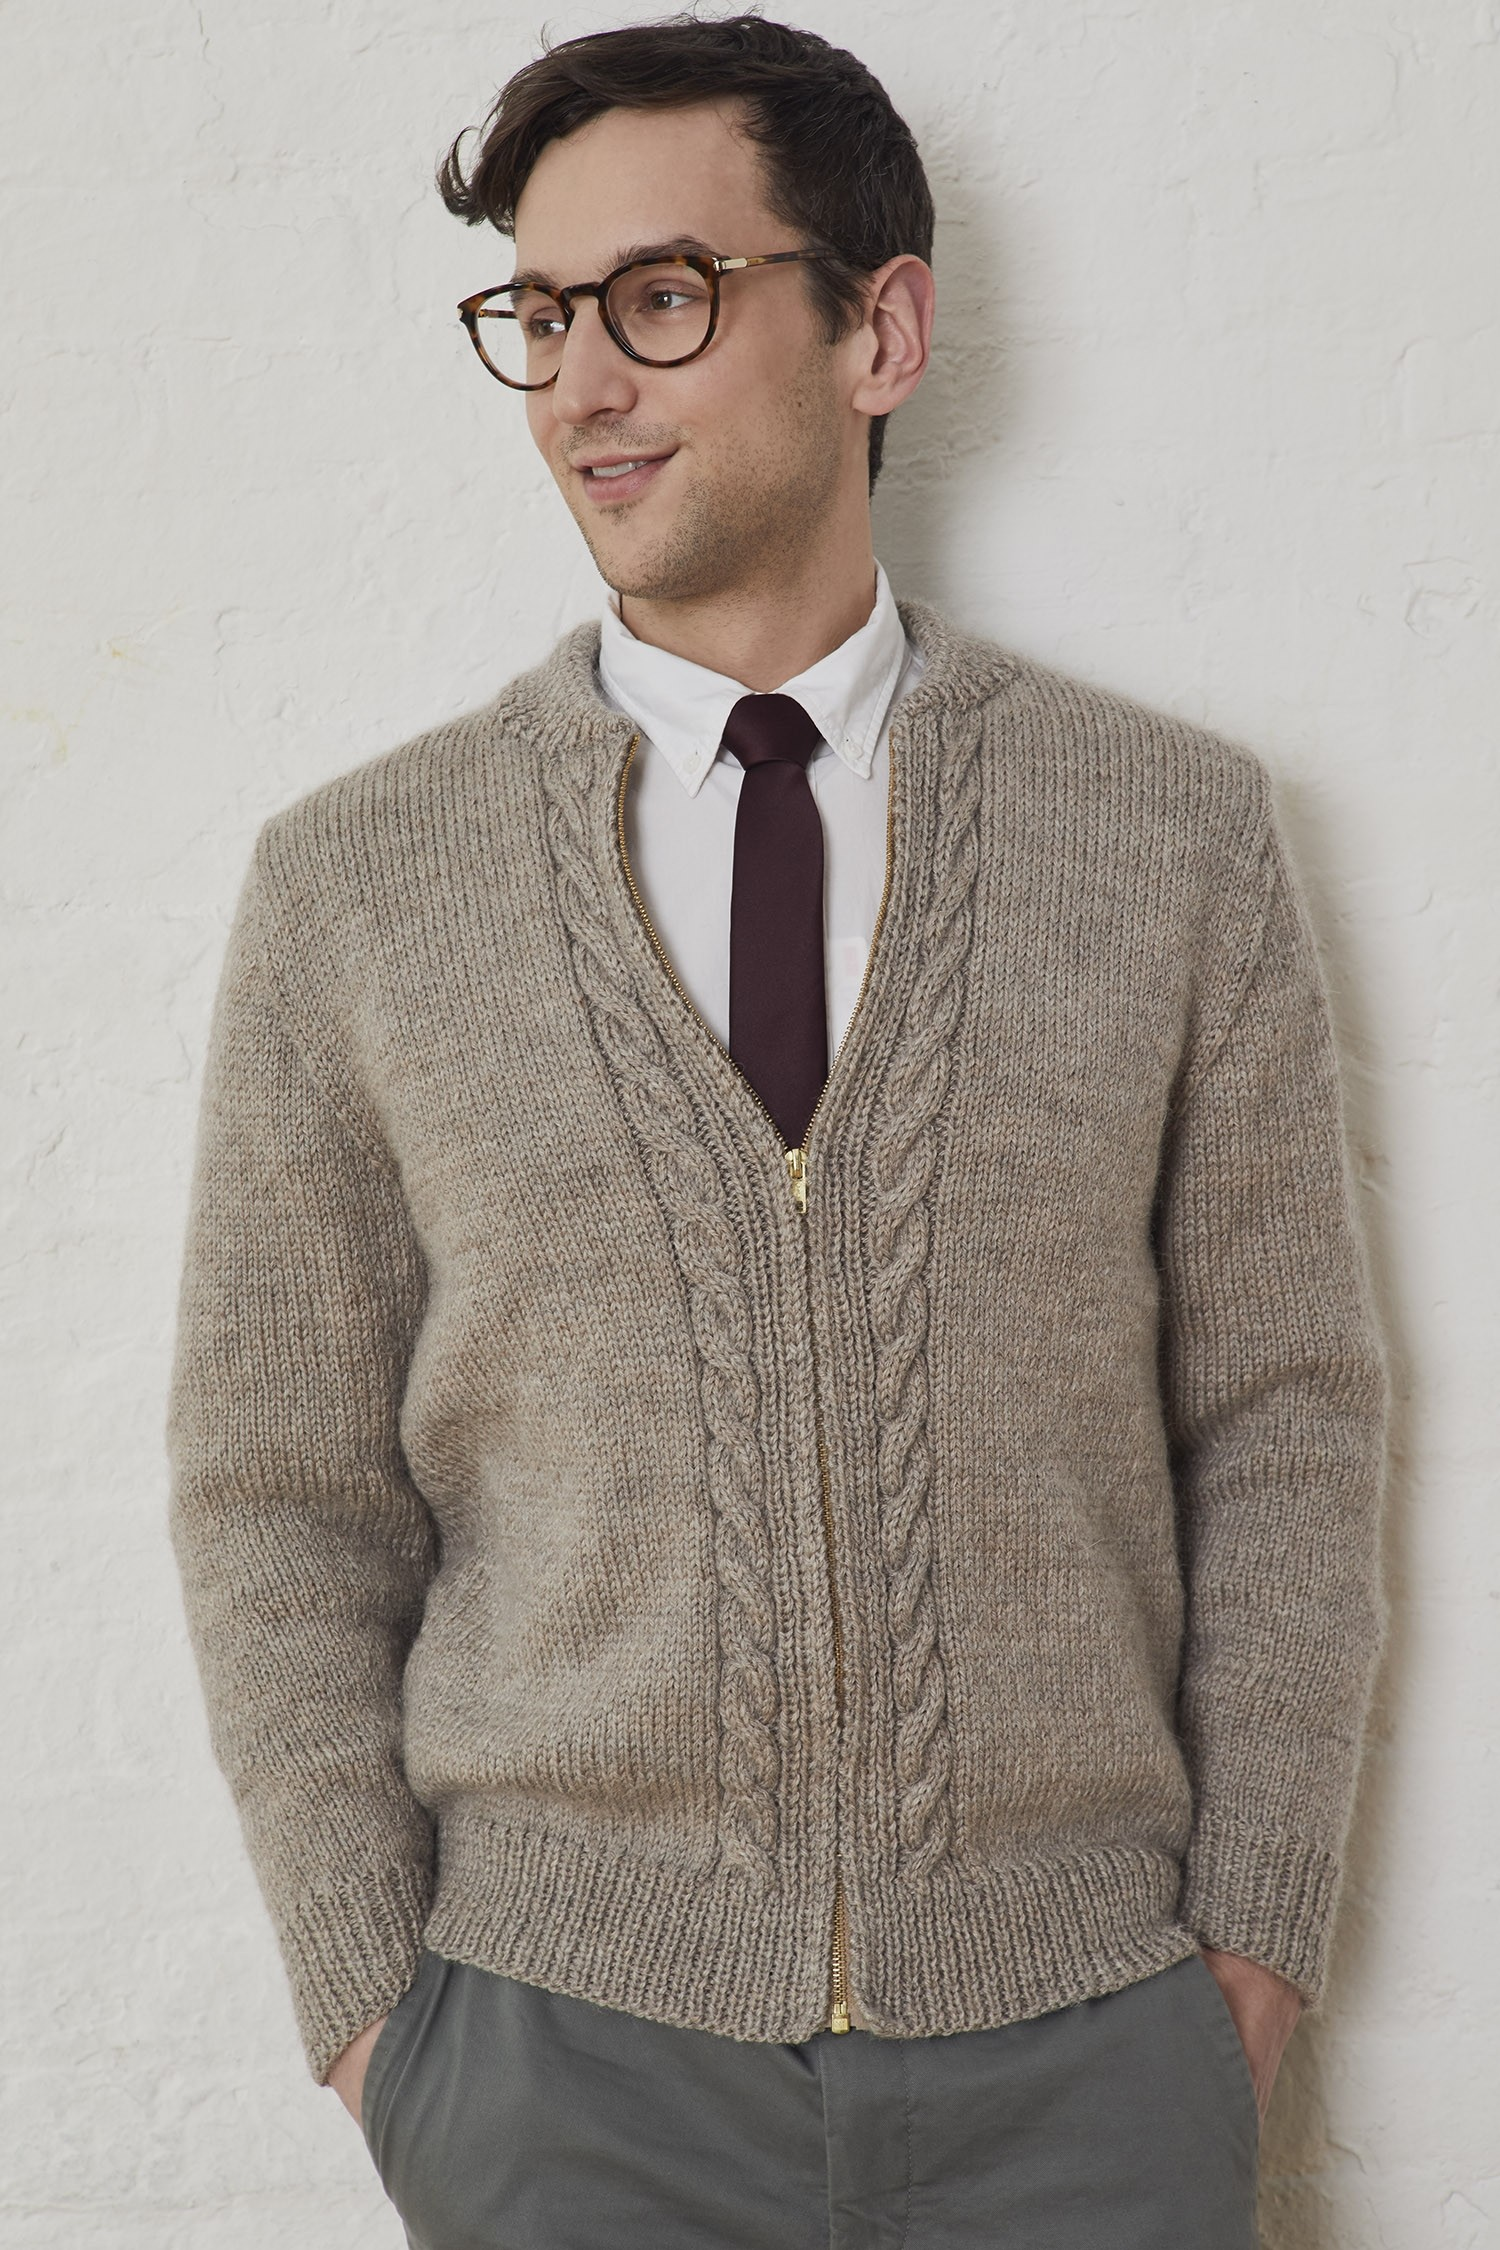 Free Mens Knitting Pattern For A Neighborly Cardigan Knitting Bee